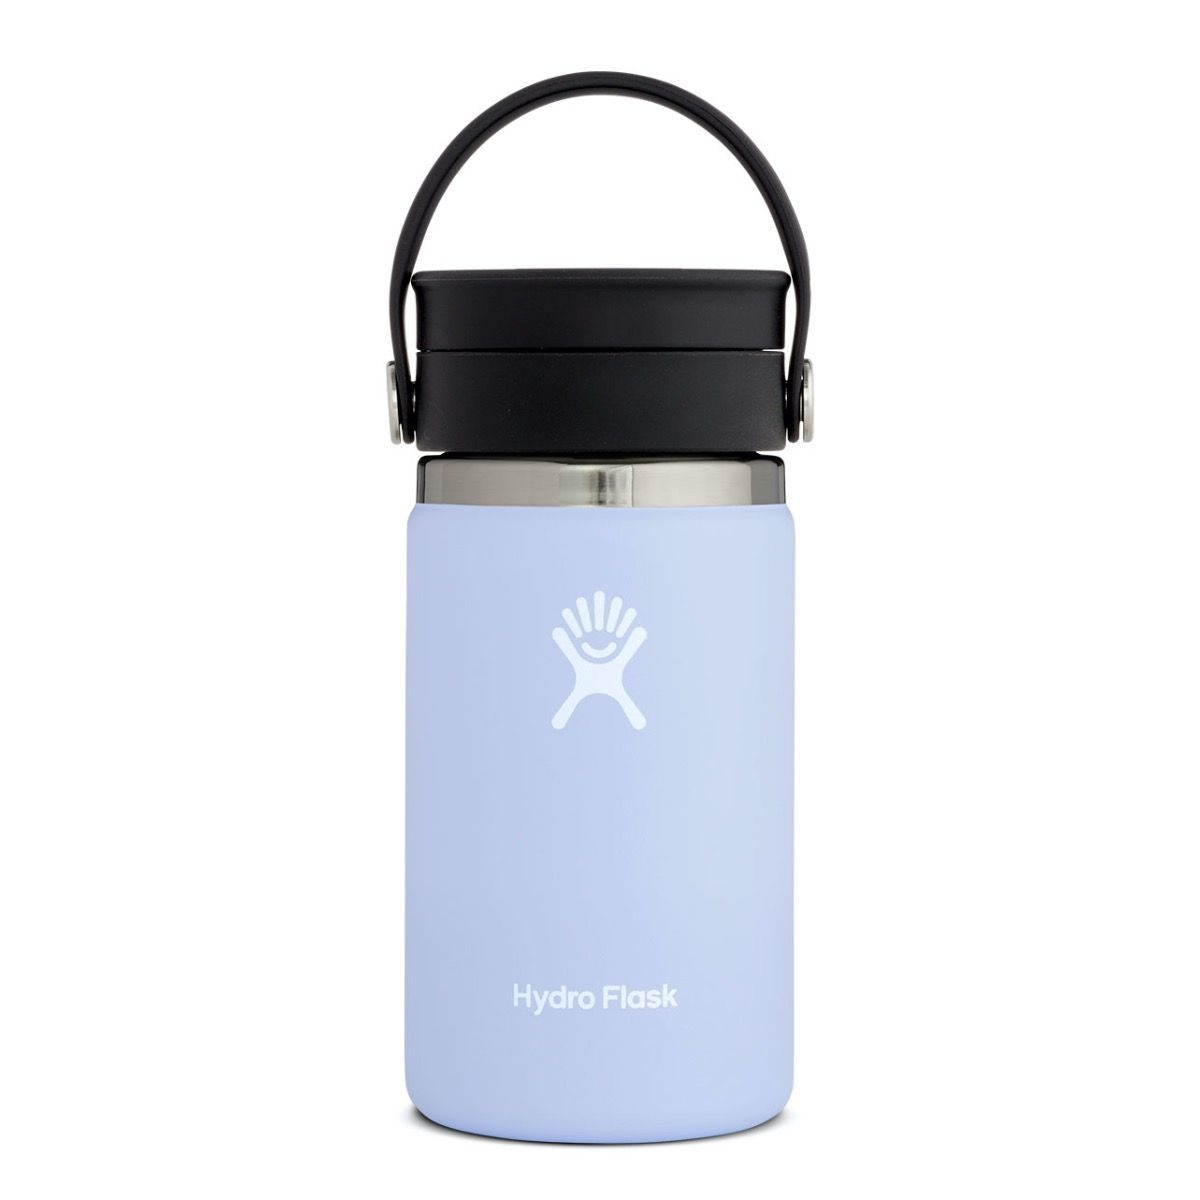 Hydro Flask 12 oz (355 ml) Coffee with Flex Sip™ Lid